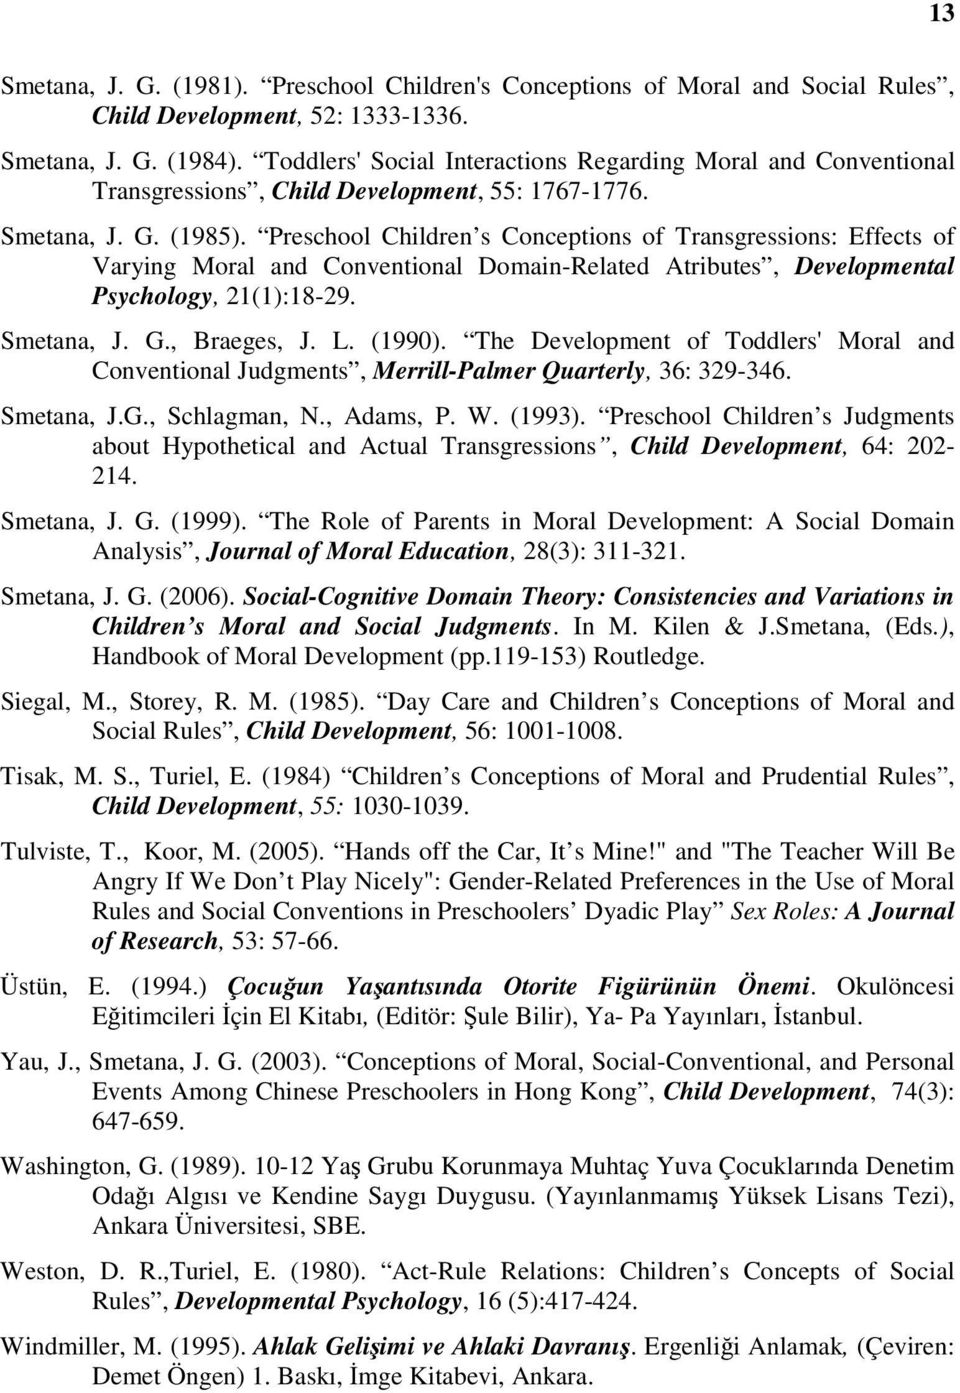 Preschool Children s Conceptions of Transgressions: Effects of Varying Moral and Conventional Domain-Related Atributes, Developmental Psychology, 21(1):18-29. Smetana, J. G., Braeges, J. L. (1990).